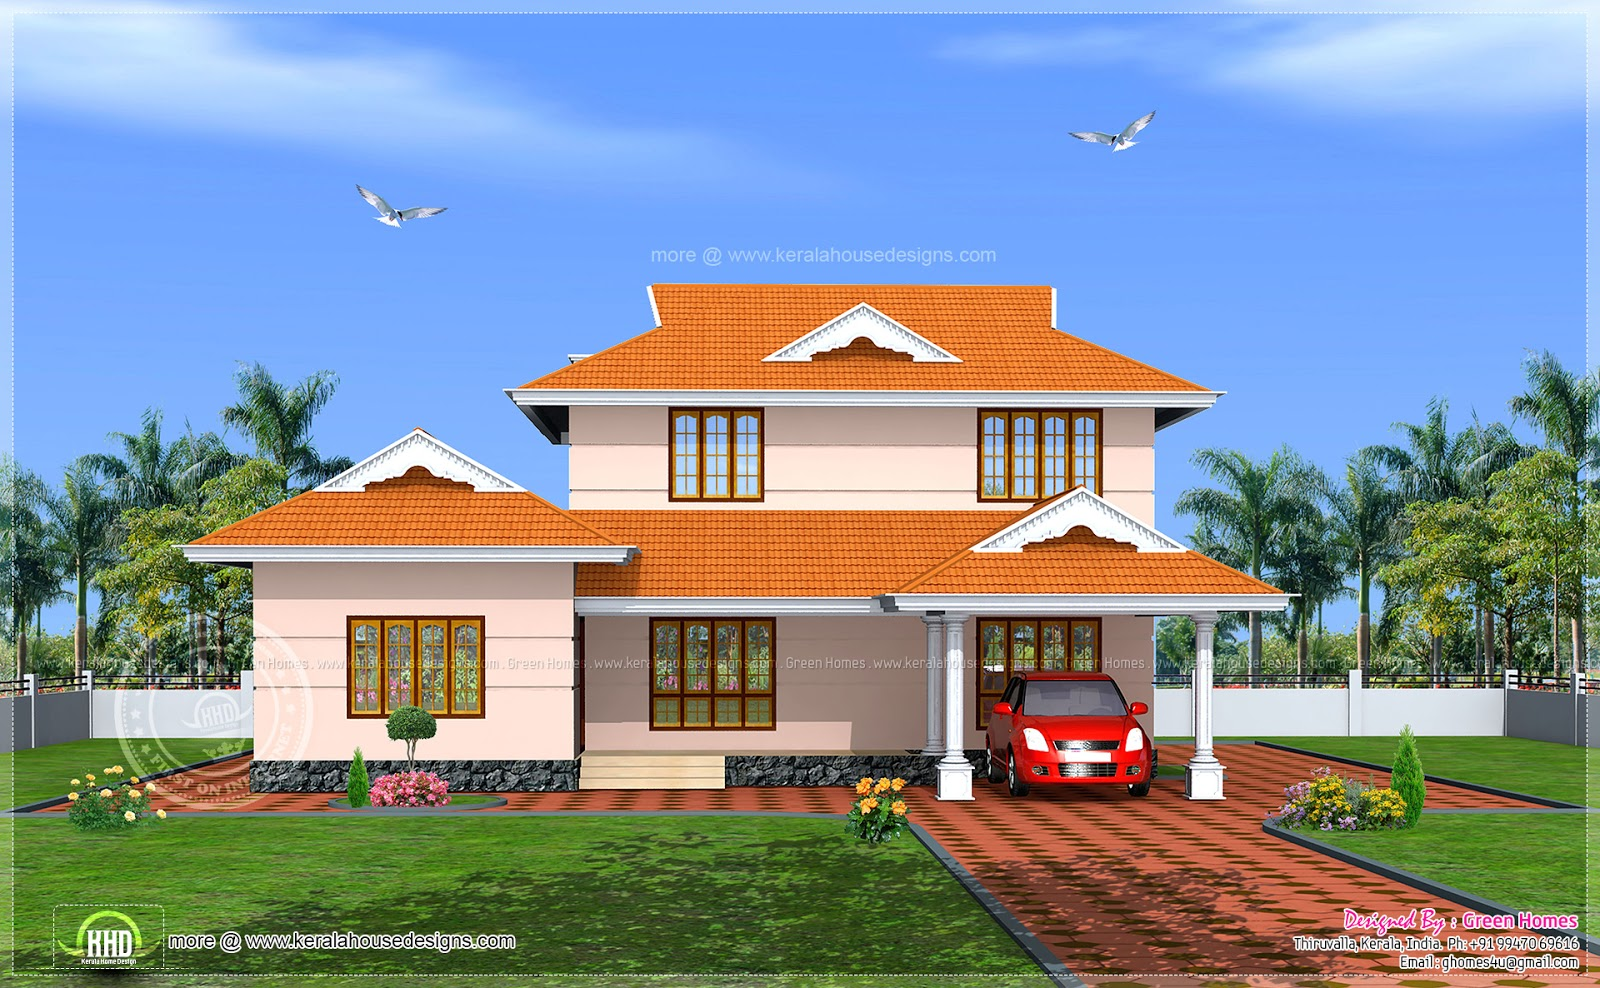 House plans and design house plans in kerala model with for Kerala house model plan